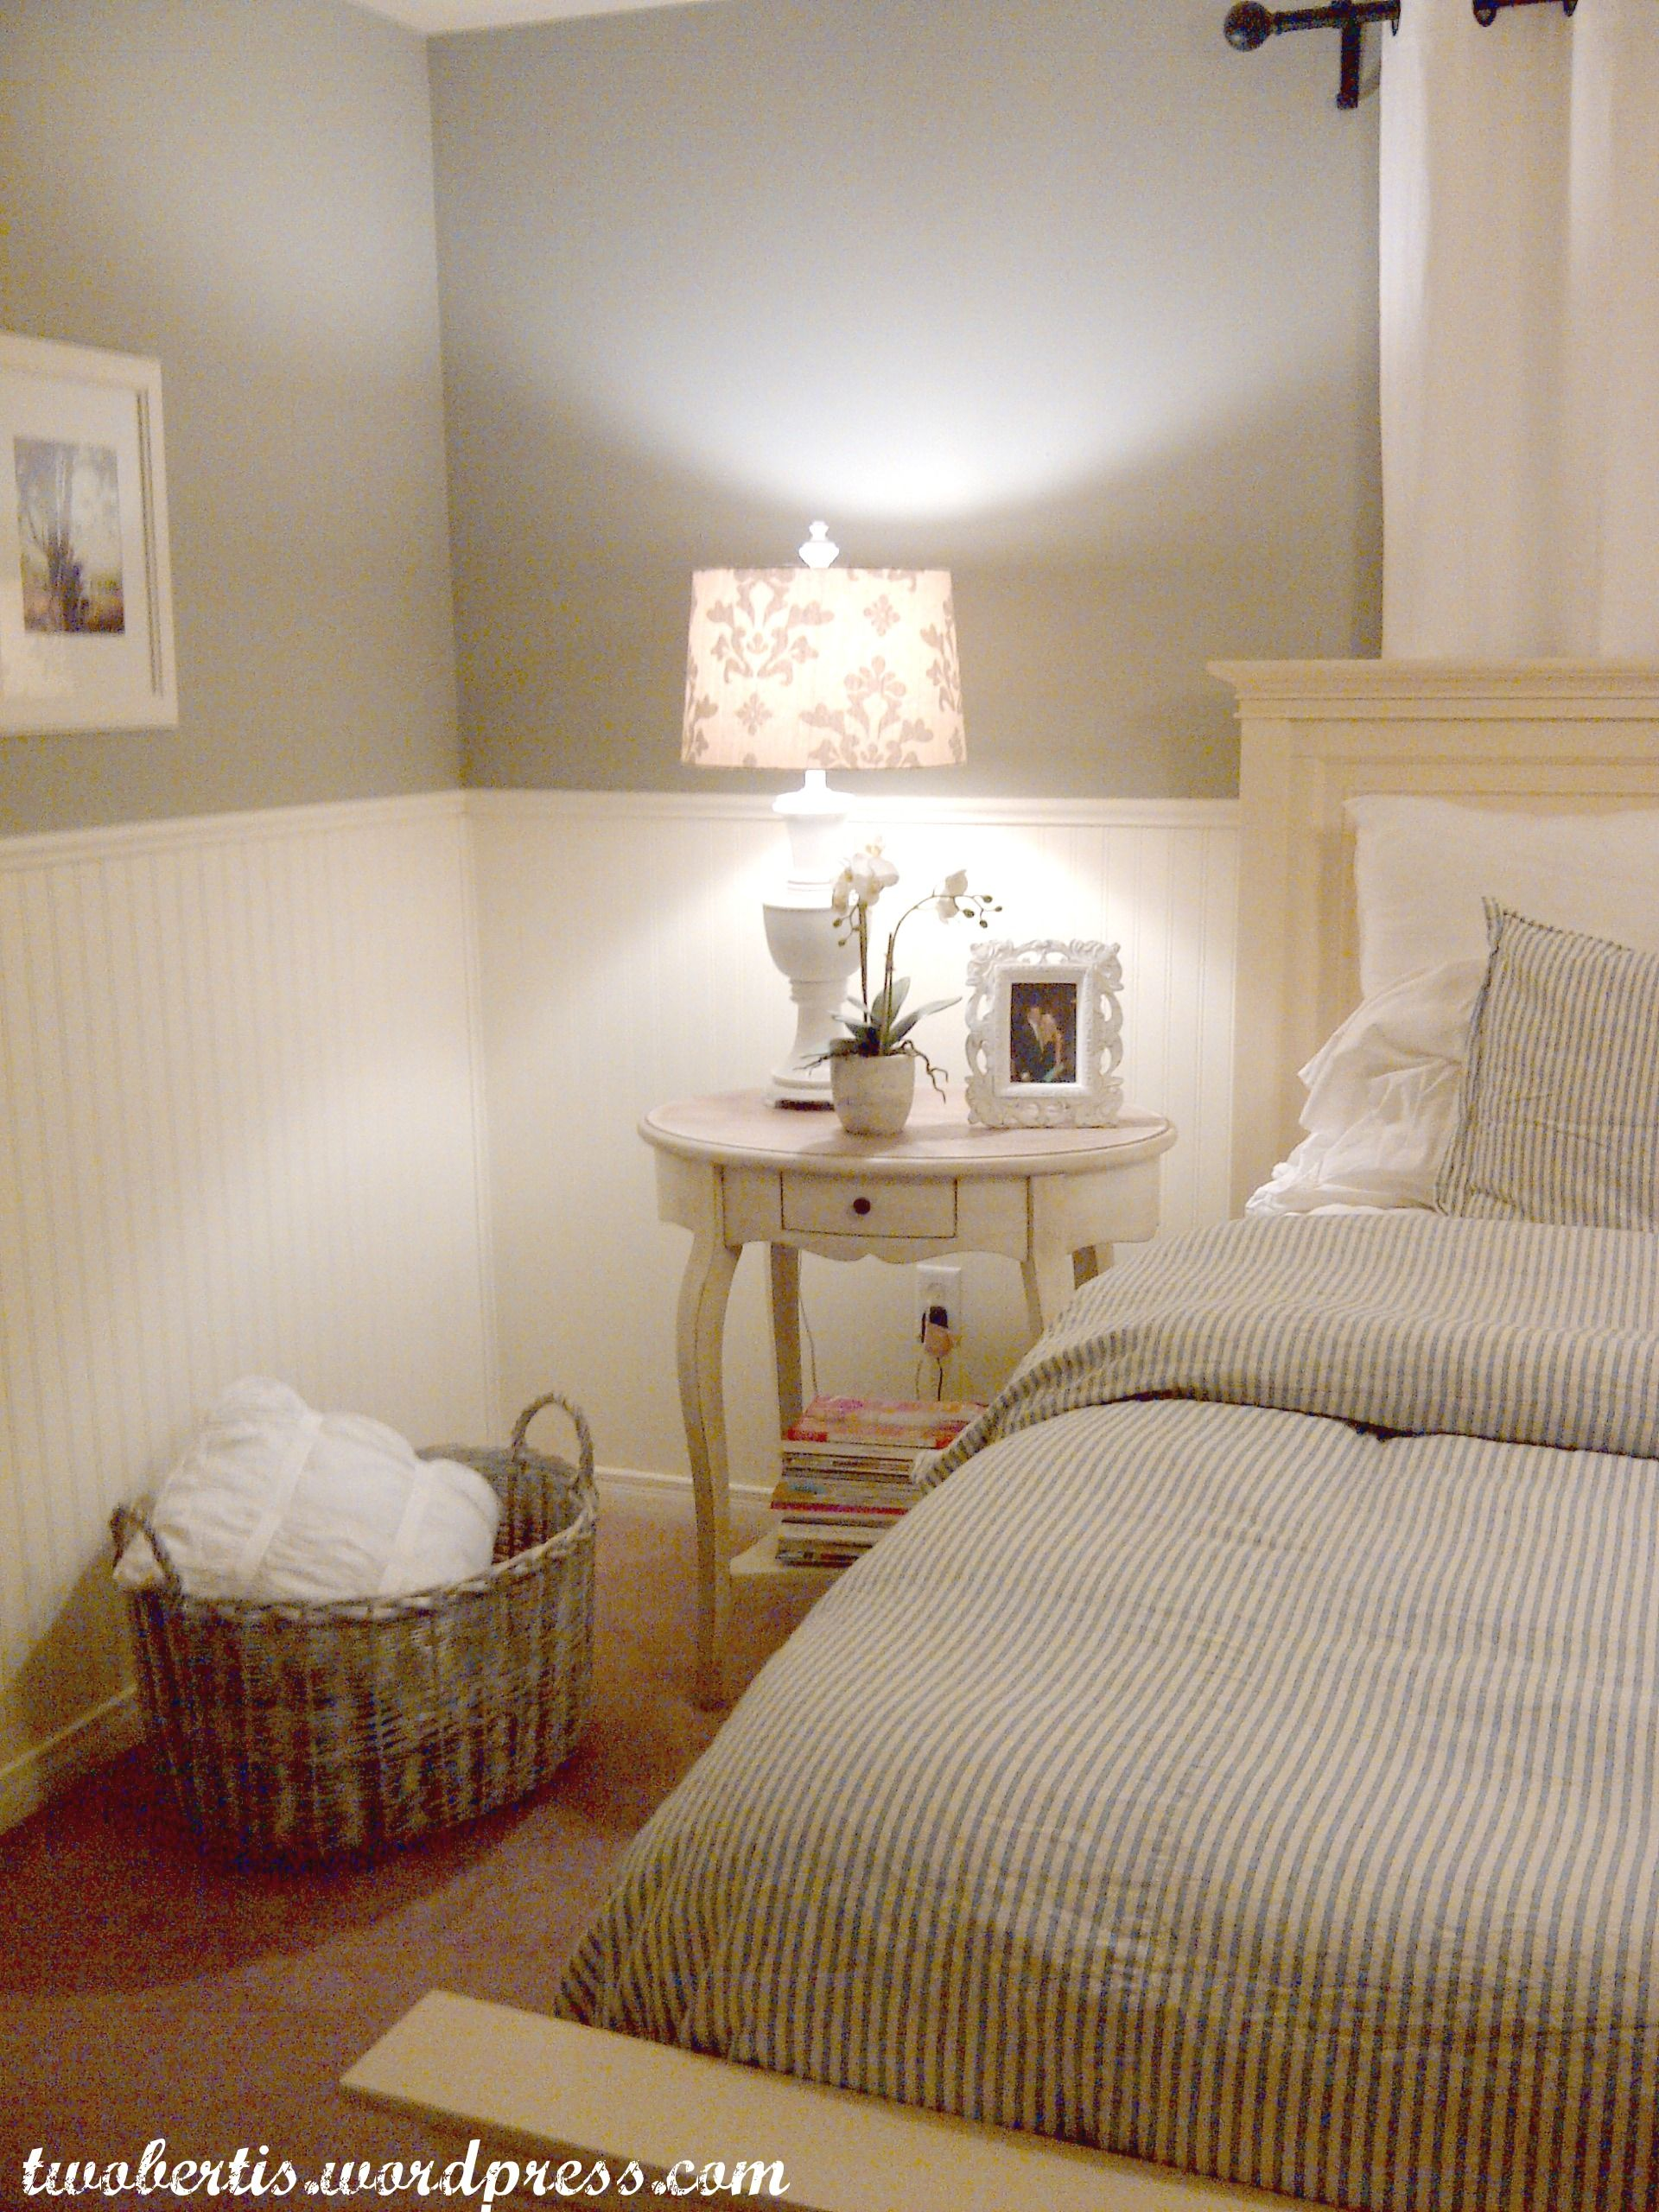 Wainscoting master bedroom - Pottery Barn Inspired Master Bedroom Makeover